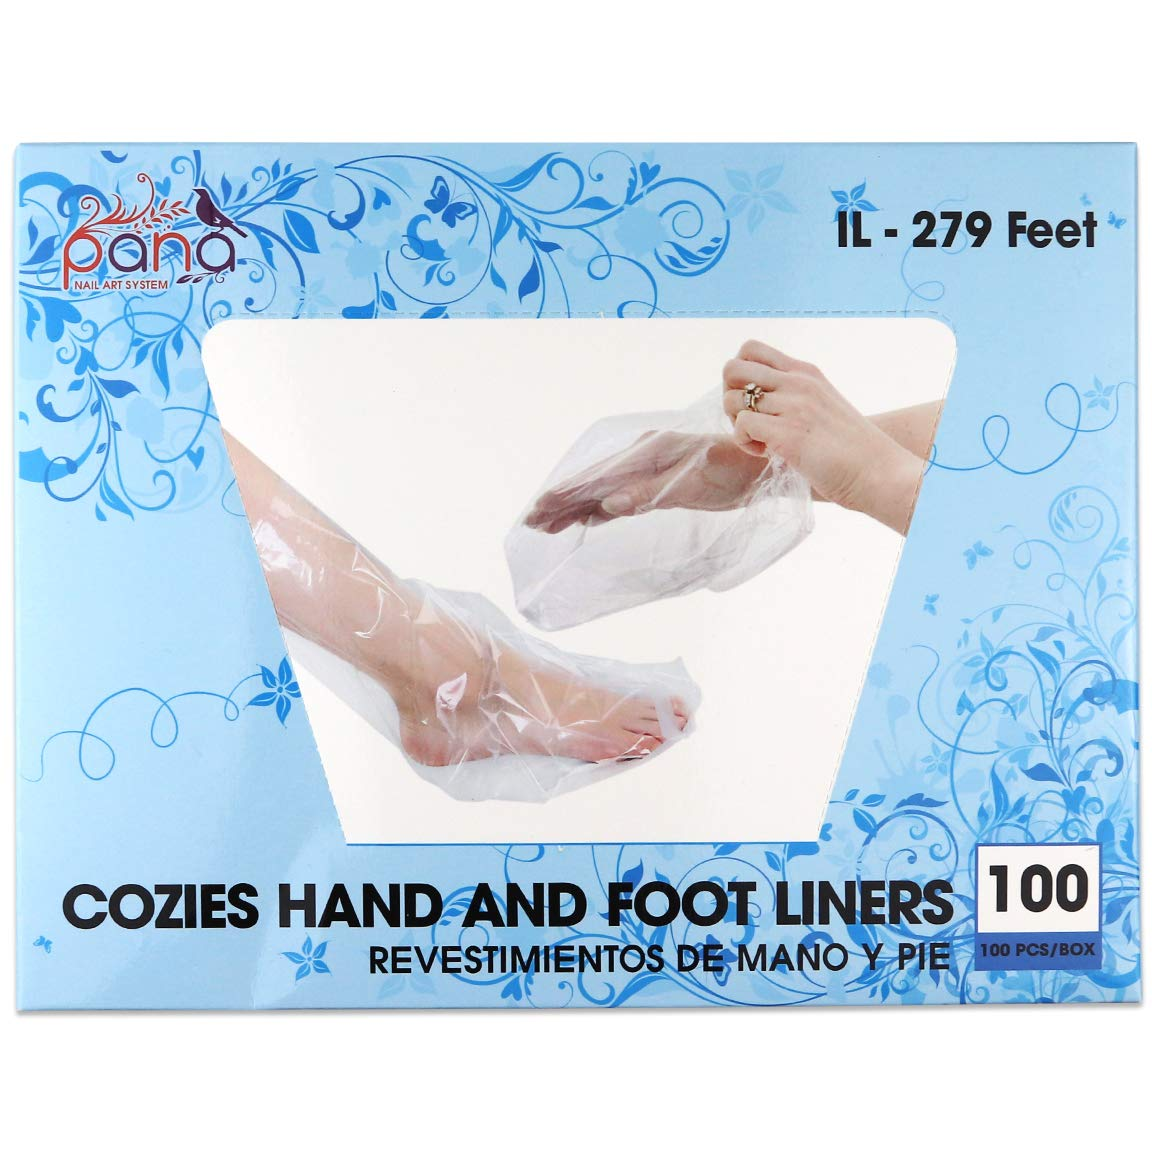 Ivy L Brand (Quantity: 200 Counts) LARGE Size for Paraffin Hand & Foot Protectors Wax Works Thermal Mitt Liner For Pro Cozie Liners Hand or Foot (Quantity: 100 Counts) Pana